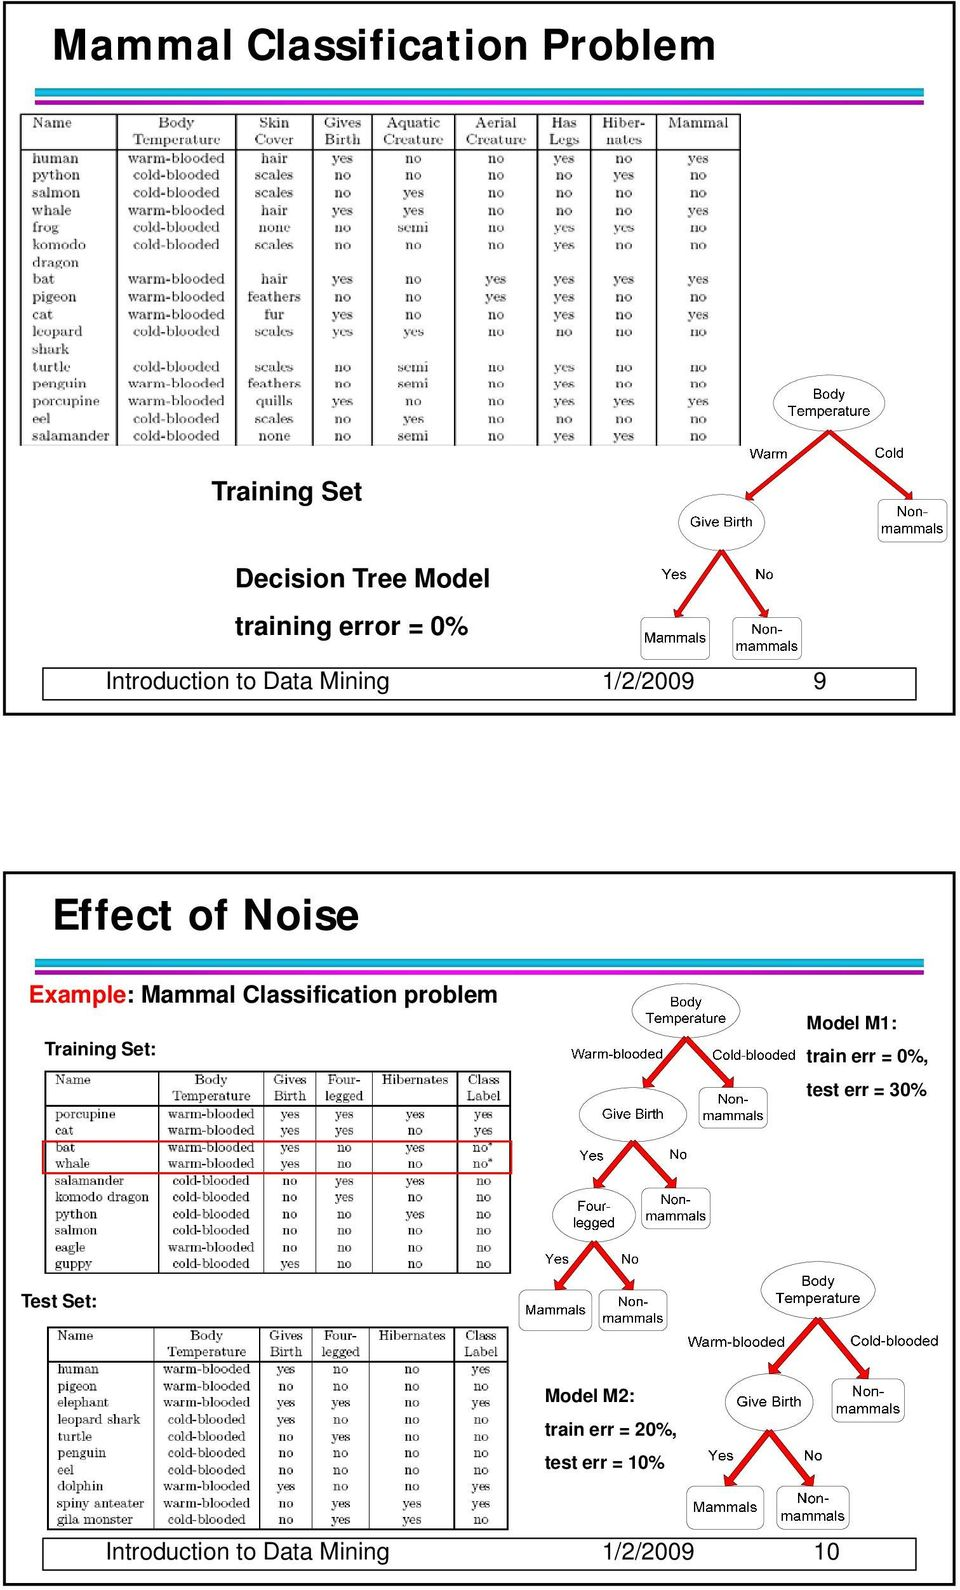 Classification problem Training Set: Model M1: train err = 0%, test err = 30%